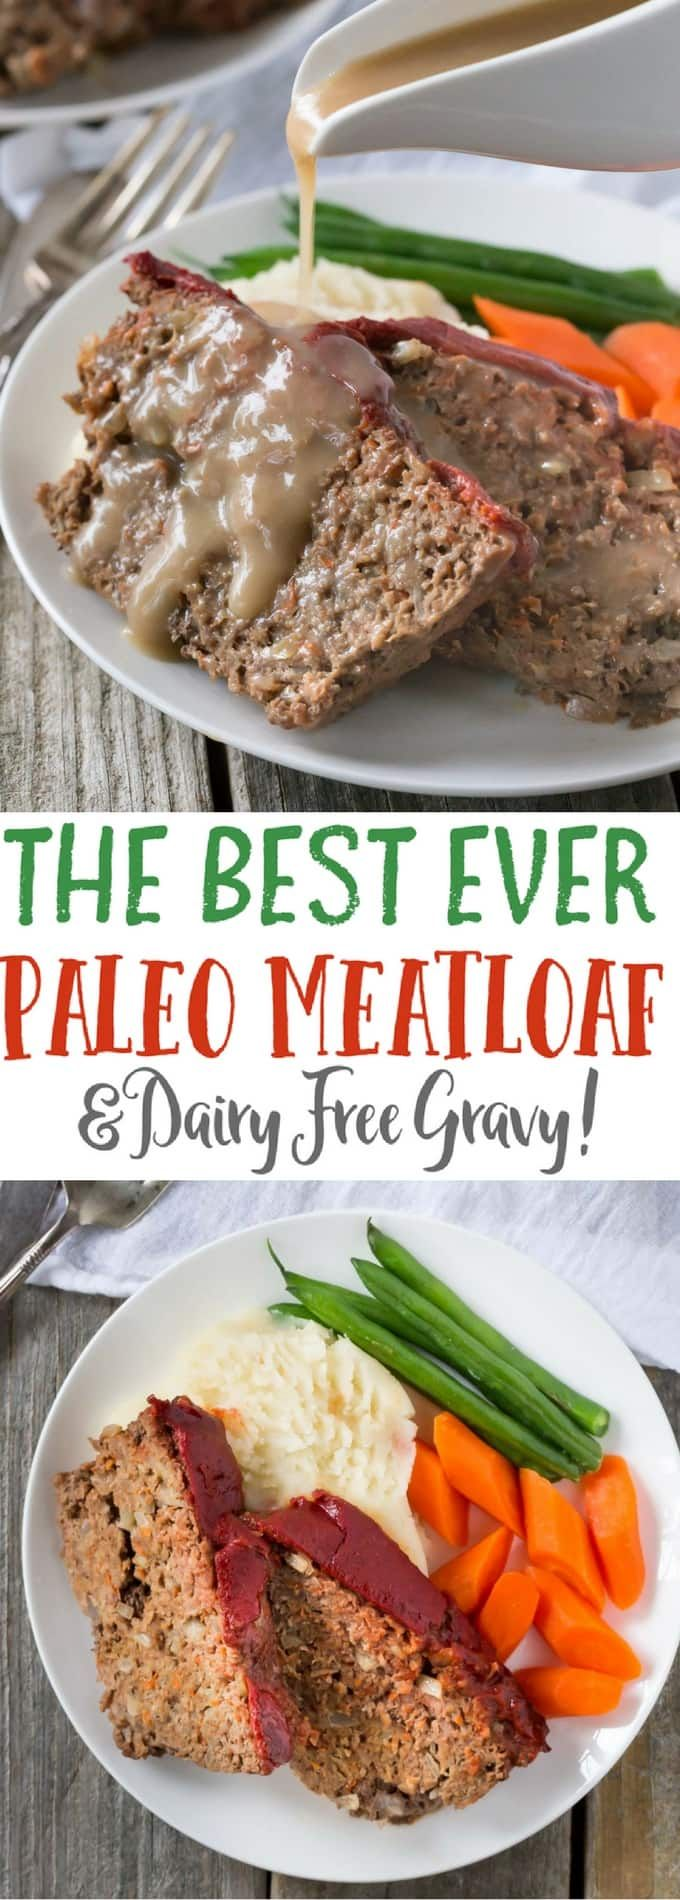 Paleo Meatloaf recipe with tasty gravy style sauce! You can use turkey, beef, or pork and make meatloaf muffins too, it's also gluten free and whole30 compliant.